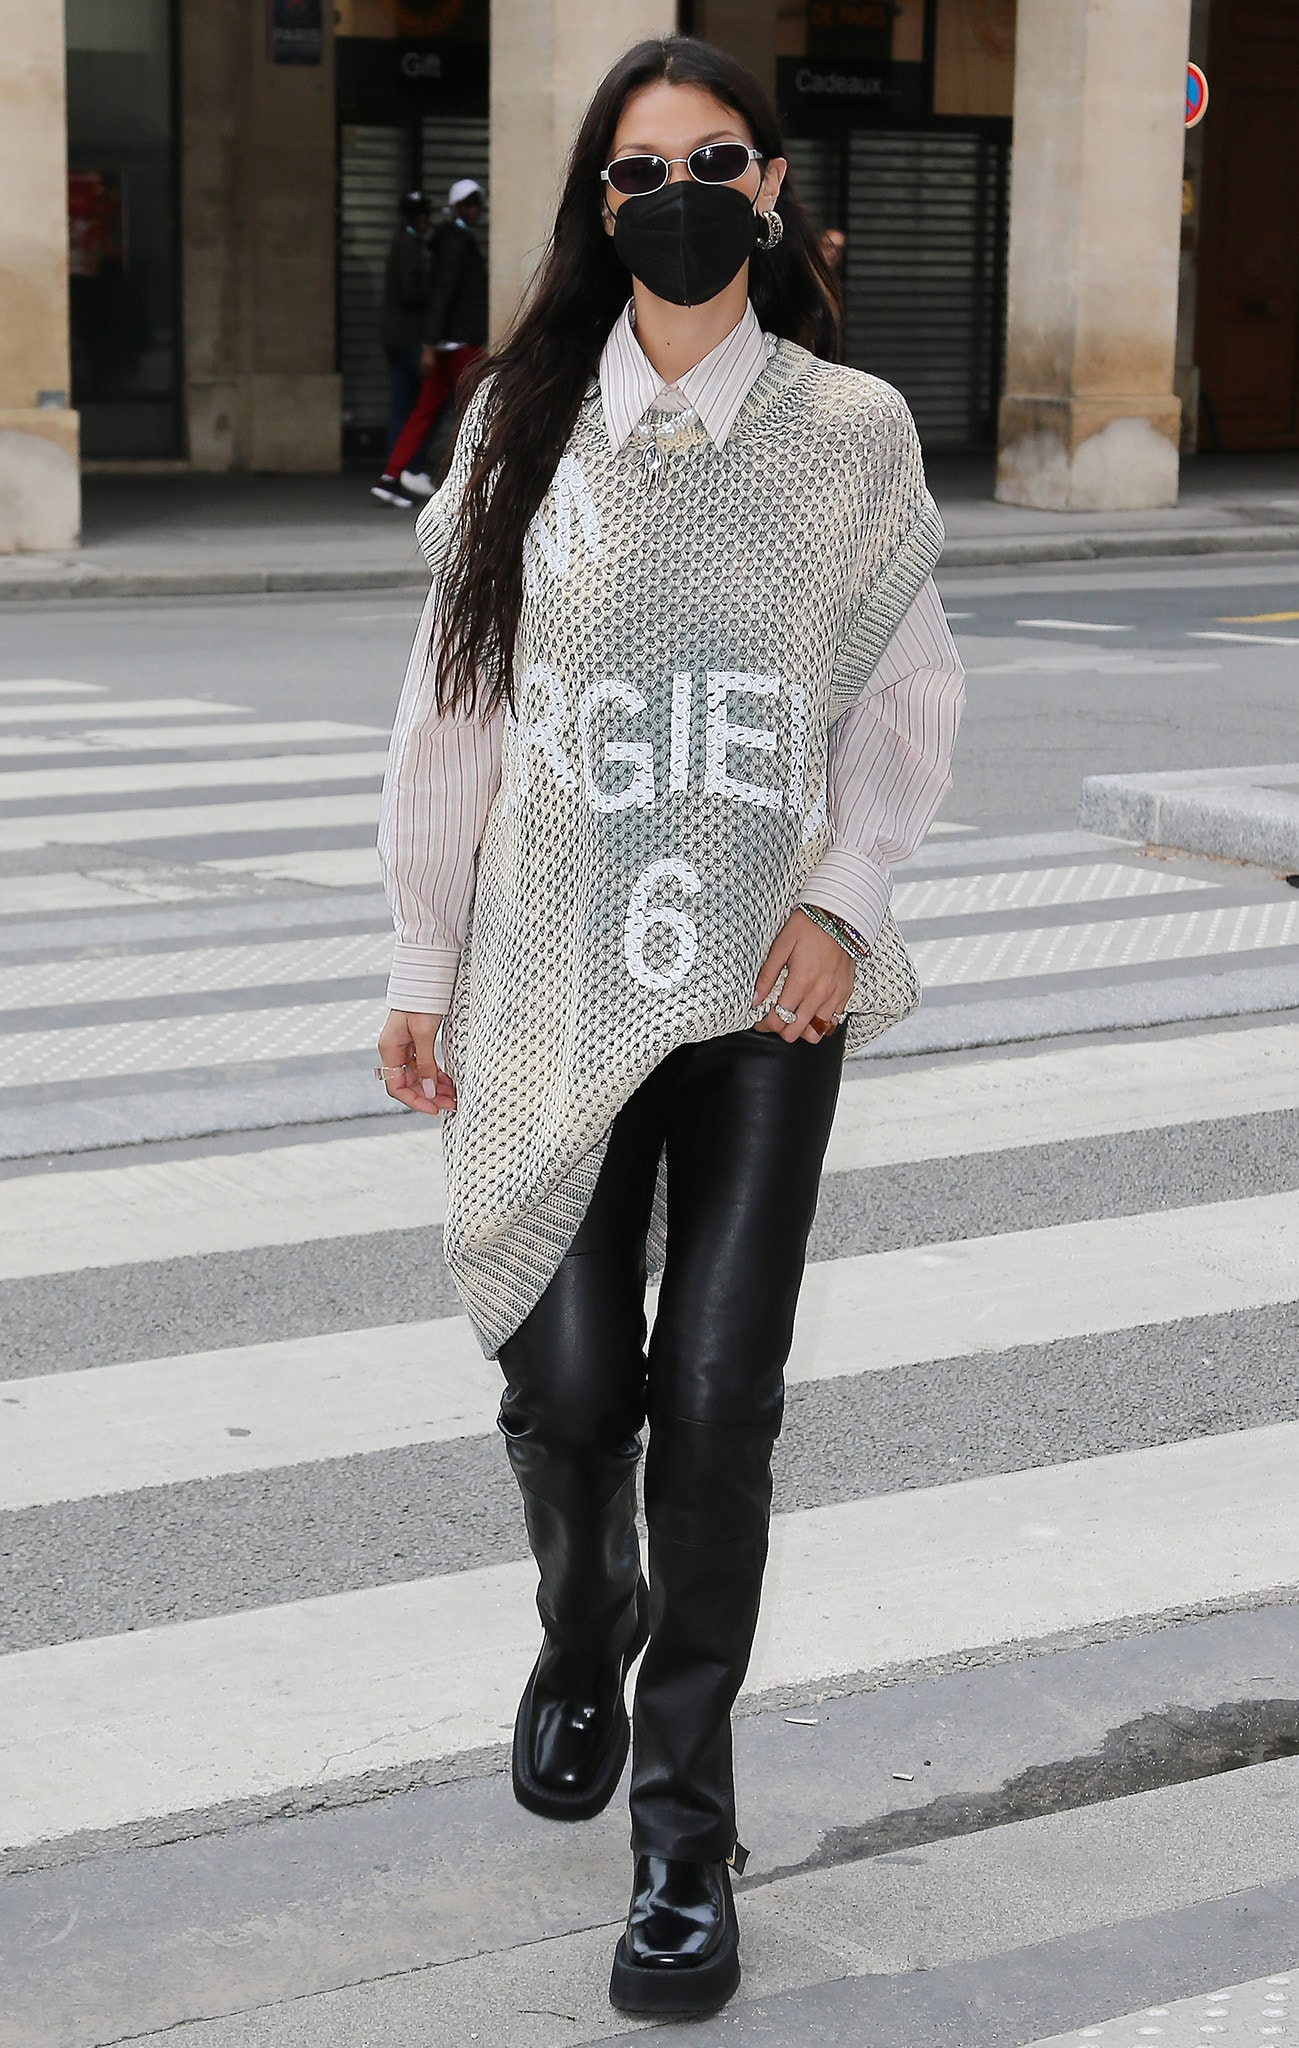 Bella Hadid on her way to the Loulou restaurant in MM6 Maison Margiela knit vest and leather trousers on June 26, 2021